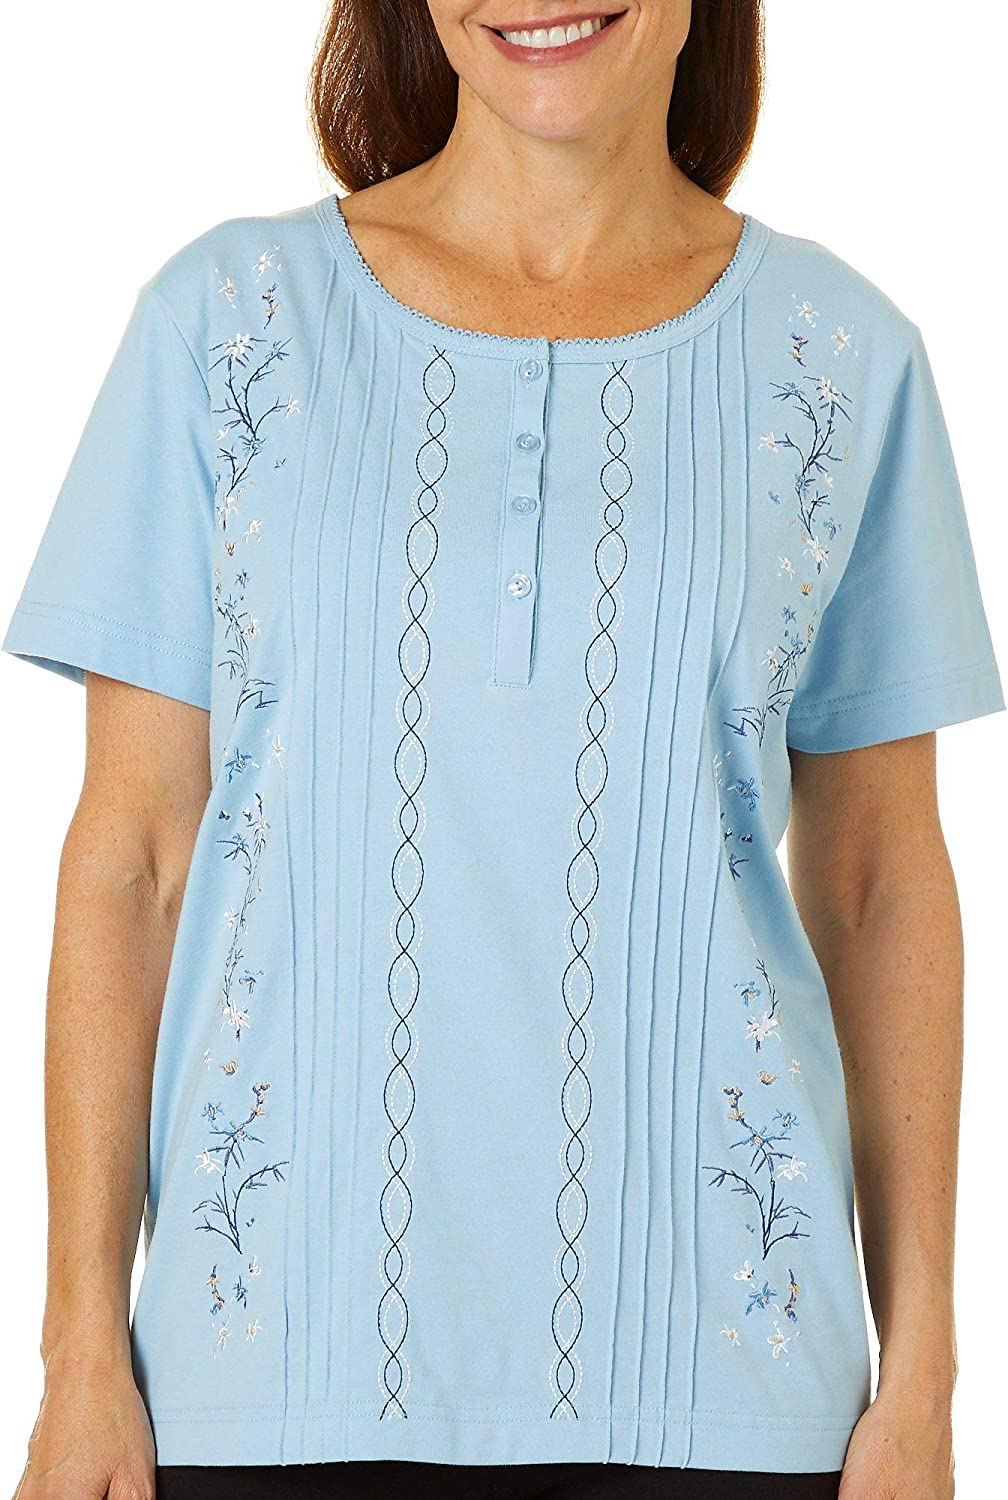 Coral Bay Womens Floral Embroidered Pintuck Short Sleeve Top 81wHNMADmeL